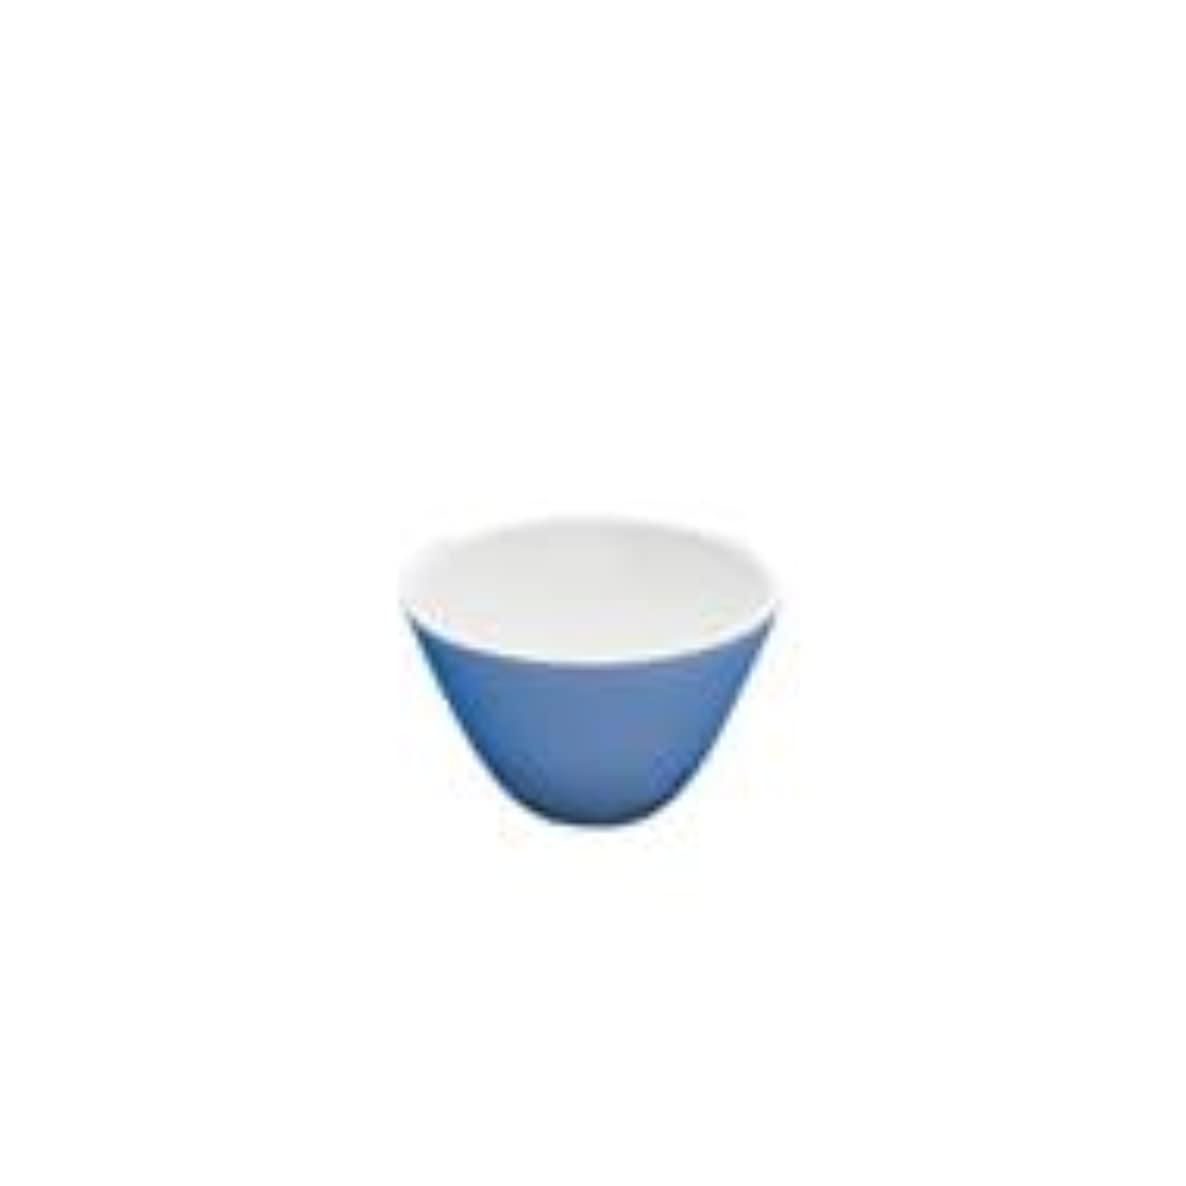 CoorsTek 60240 Porcelain Ceramic Buchner Funnel with Fixed Perforated Plate, 87mL Capacity, 101mm Height, 50-55mm Filter Paper Diameter (Case of 8)